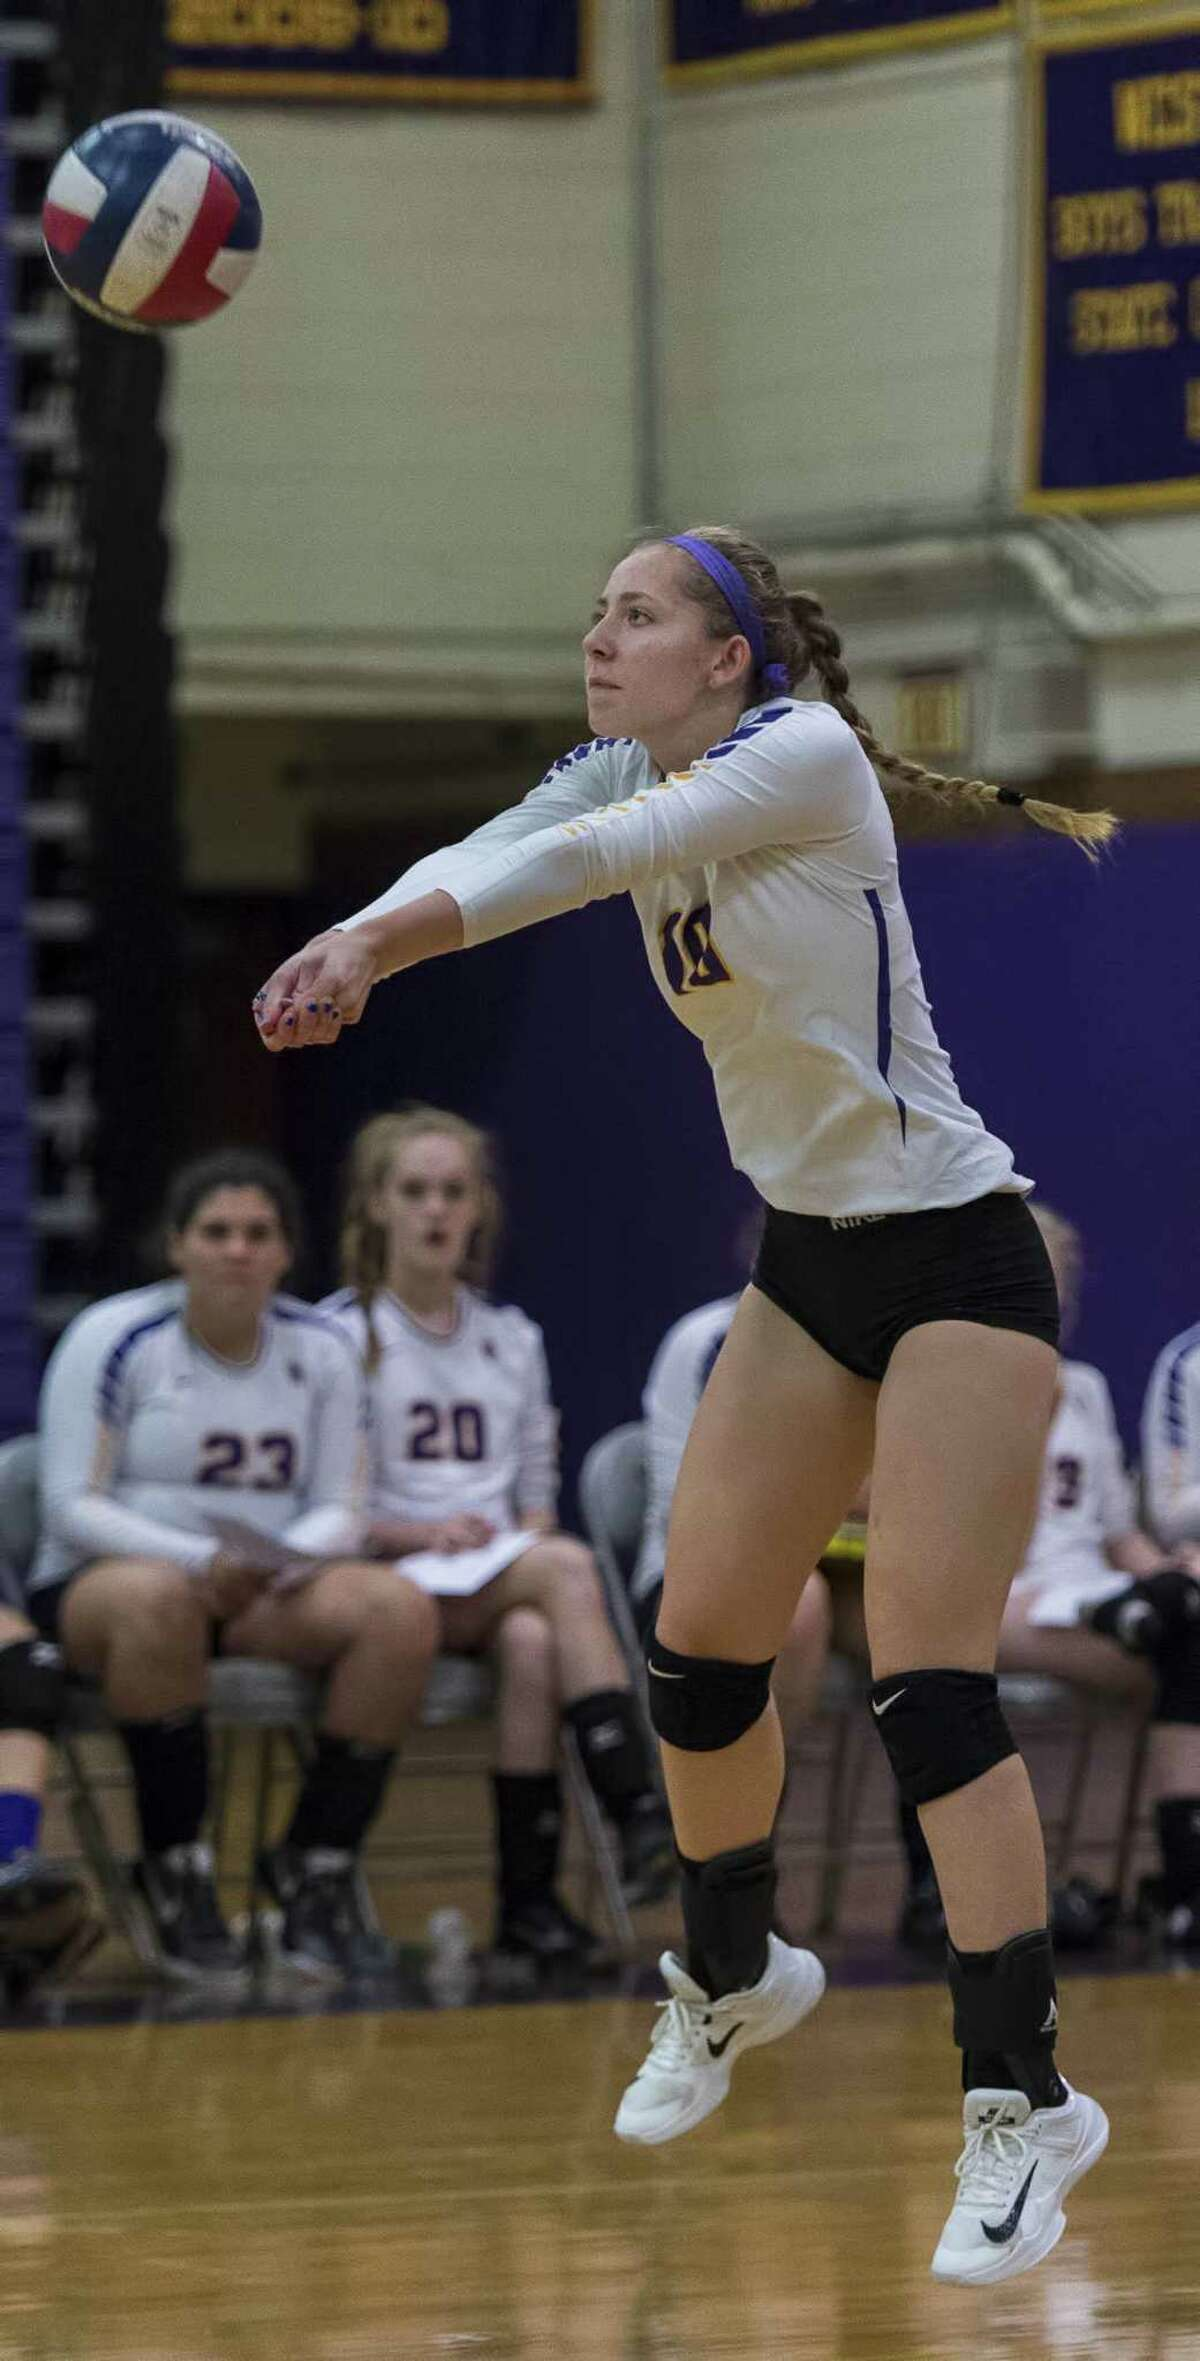 Westhill High School?'s Nikki Newcomer returns a serve during a girls volleyball game against Staples High School played at Westhill High School, Wednesday, October 11, 2017.